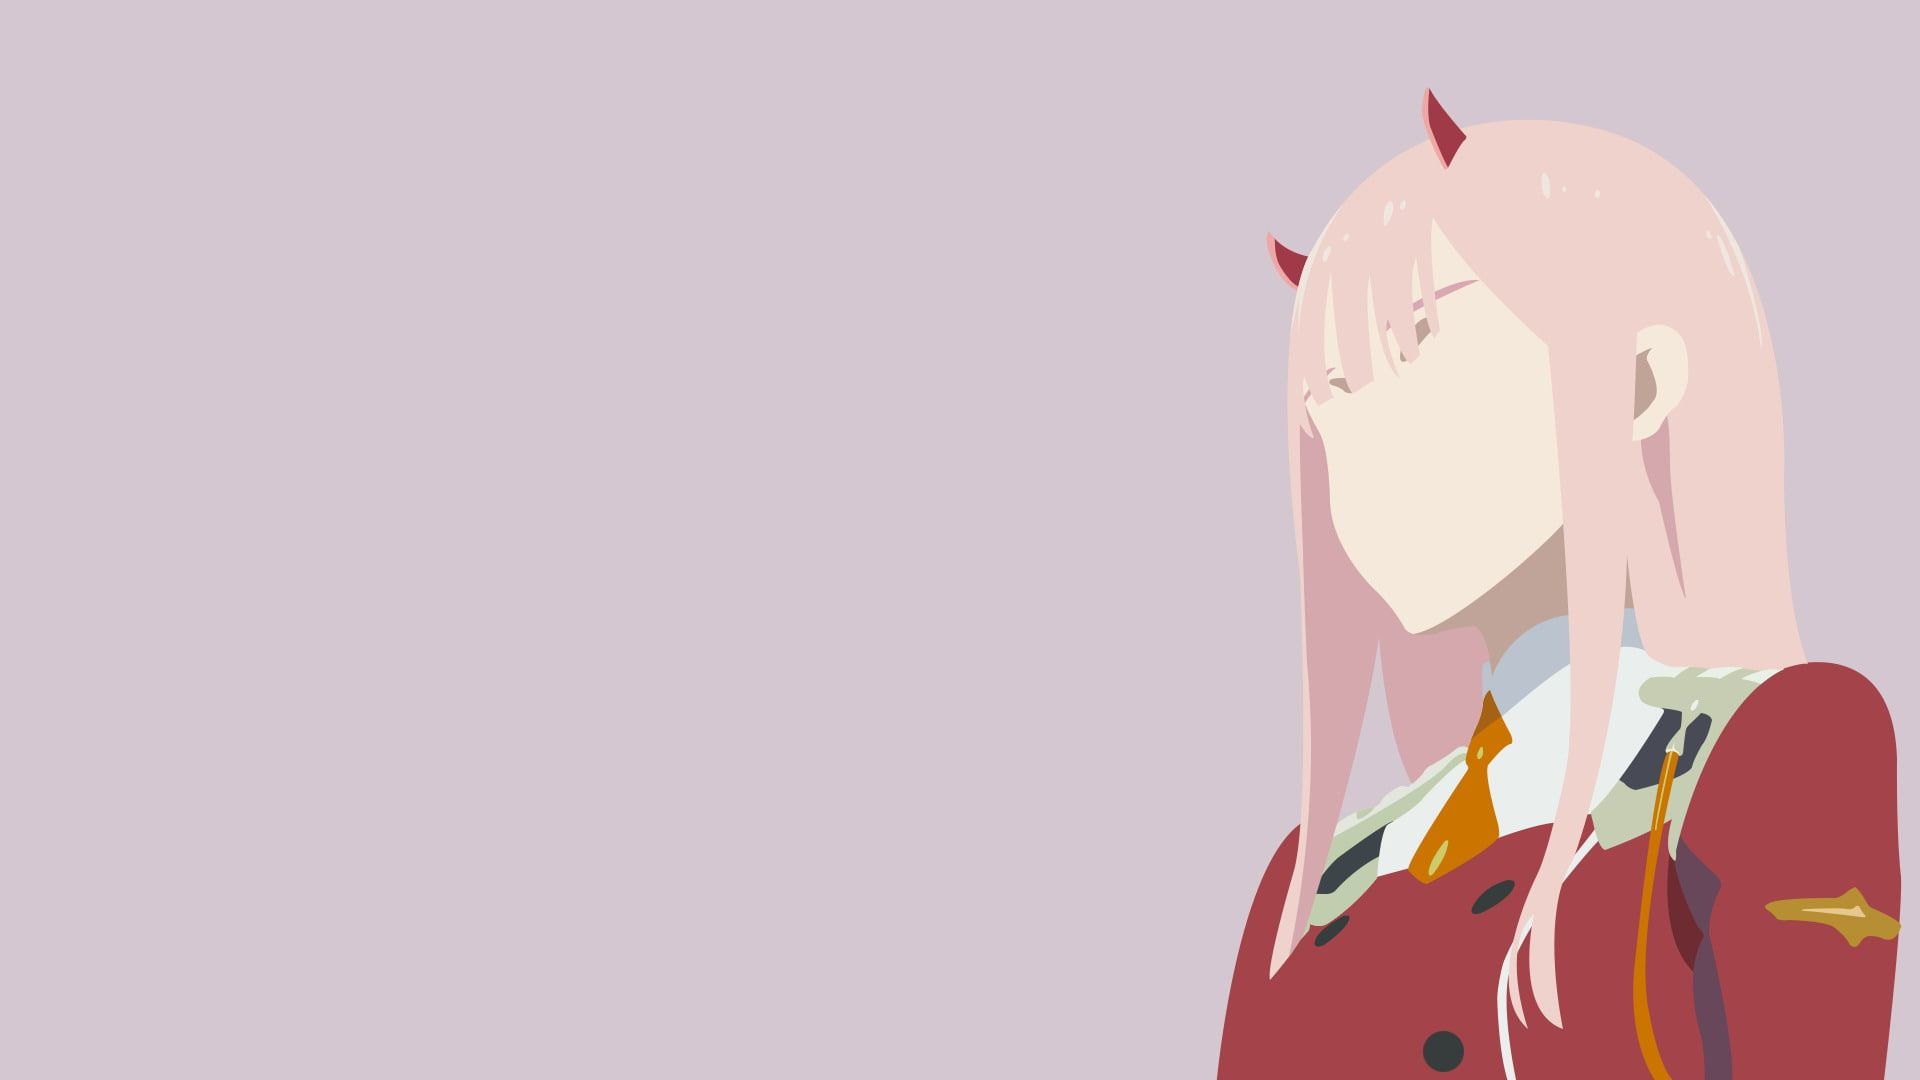 Anime Darling In The Franxx Minimalist Wallpaper Anime Wallpaper Anime Computer Wallpaper Desktop Wallpaper Art